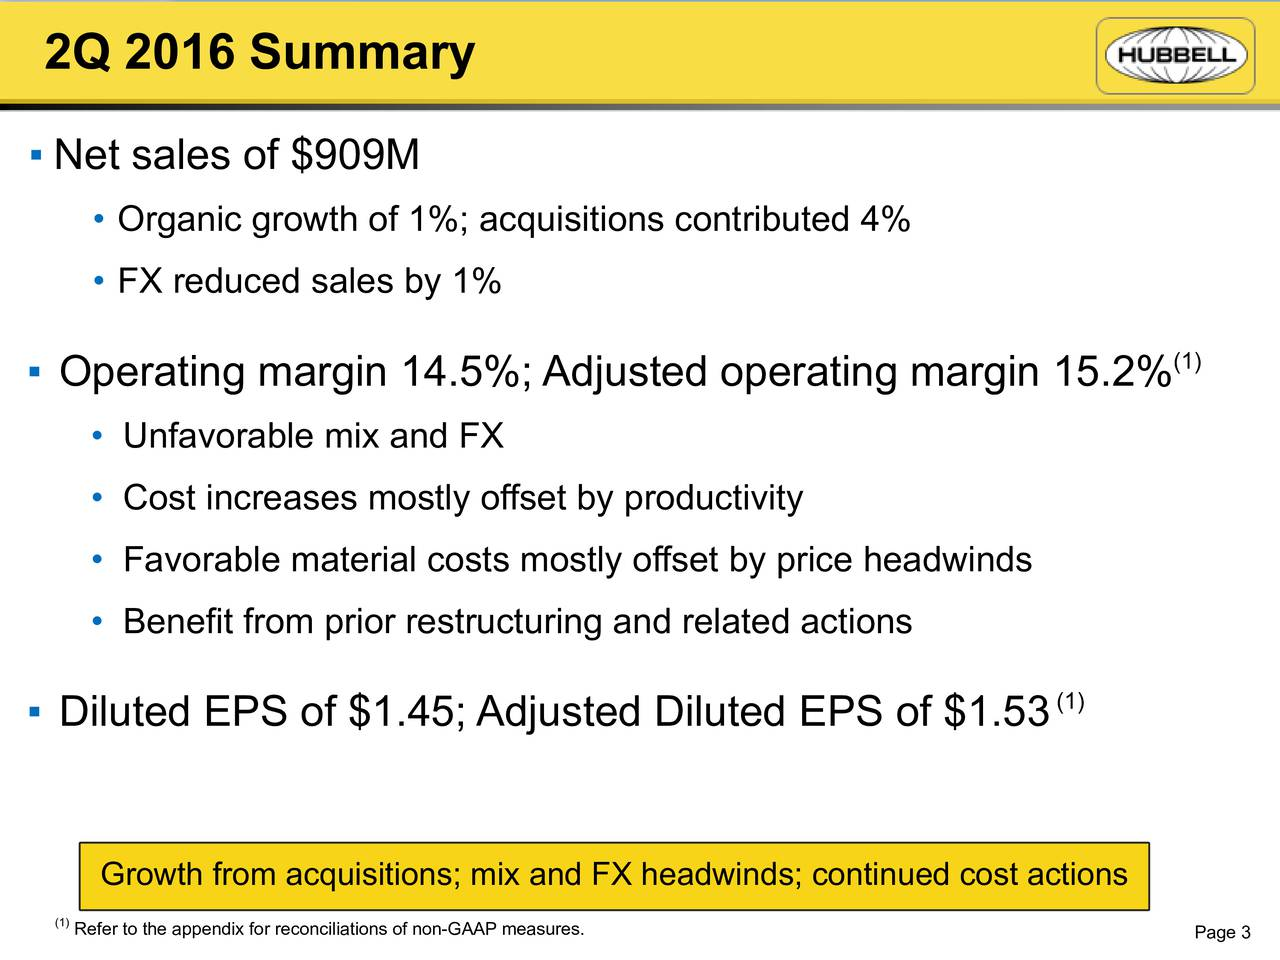 Net sales of $909M Organic growth of 1%; acquisitions contributed 4% FX reduced sales by 1% Operating margin 14.5%; Adjusted operating margin 15.2% (1) Unfavorable mix and FX Cost increases mostly offset by productivity Favorable material costs mostly offset by price headwinds Benefit from prior restructuring and related actions (1) Diluted EPS of $1.45; Adjusted Diluted EPS of $1.53 Growth from acquisitions; mix and FX headwinds; continued cost actions (Refer to the appendix for reconciliations of non-GAAP measures. Page 3